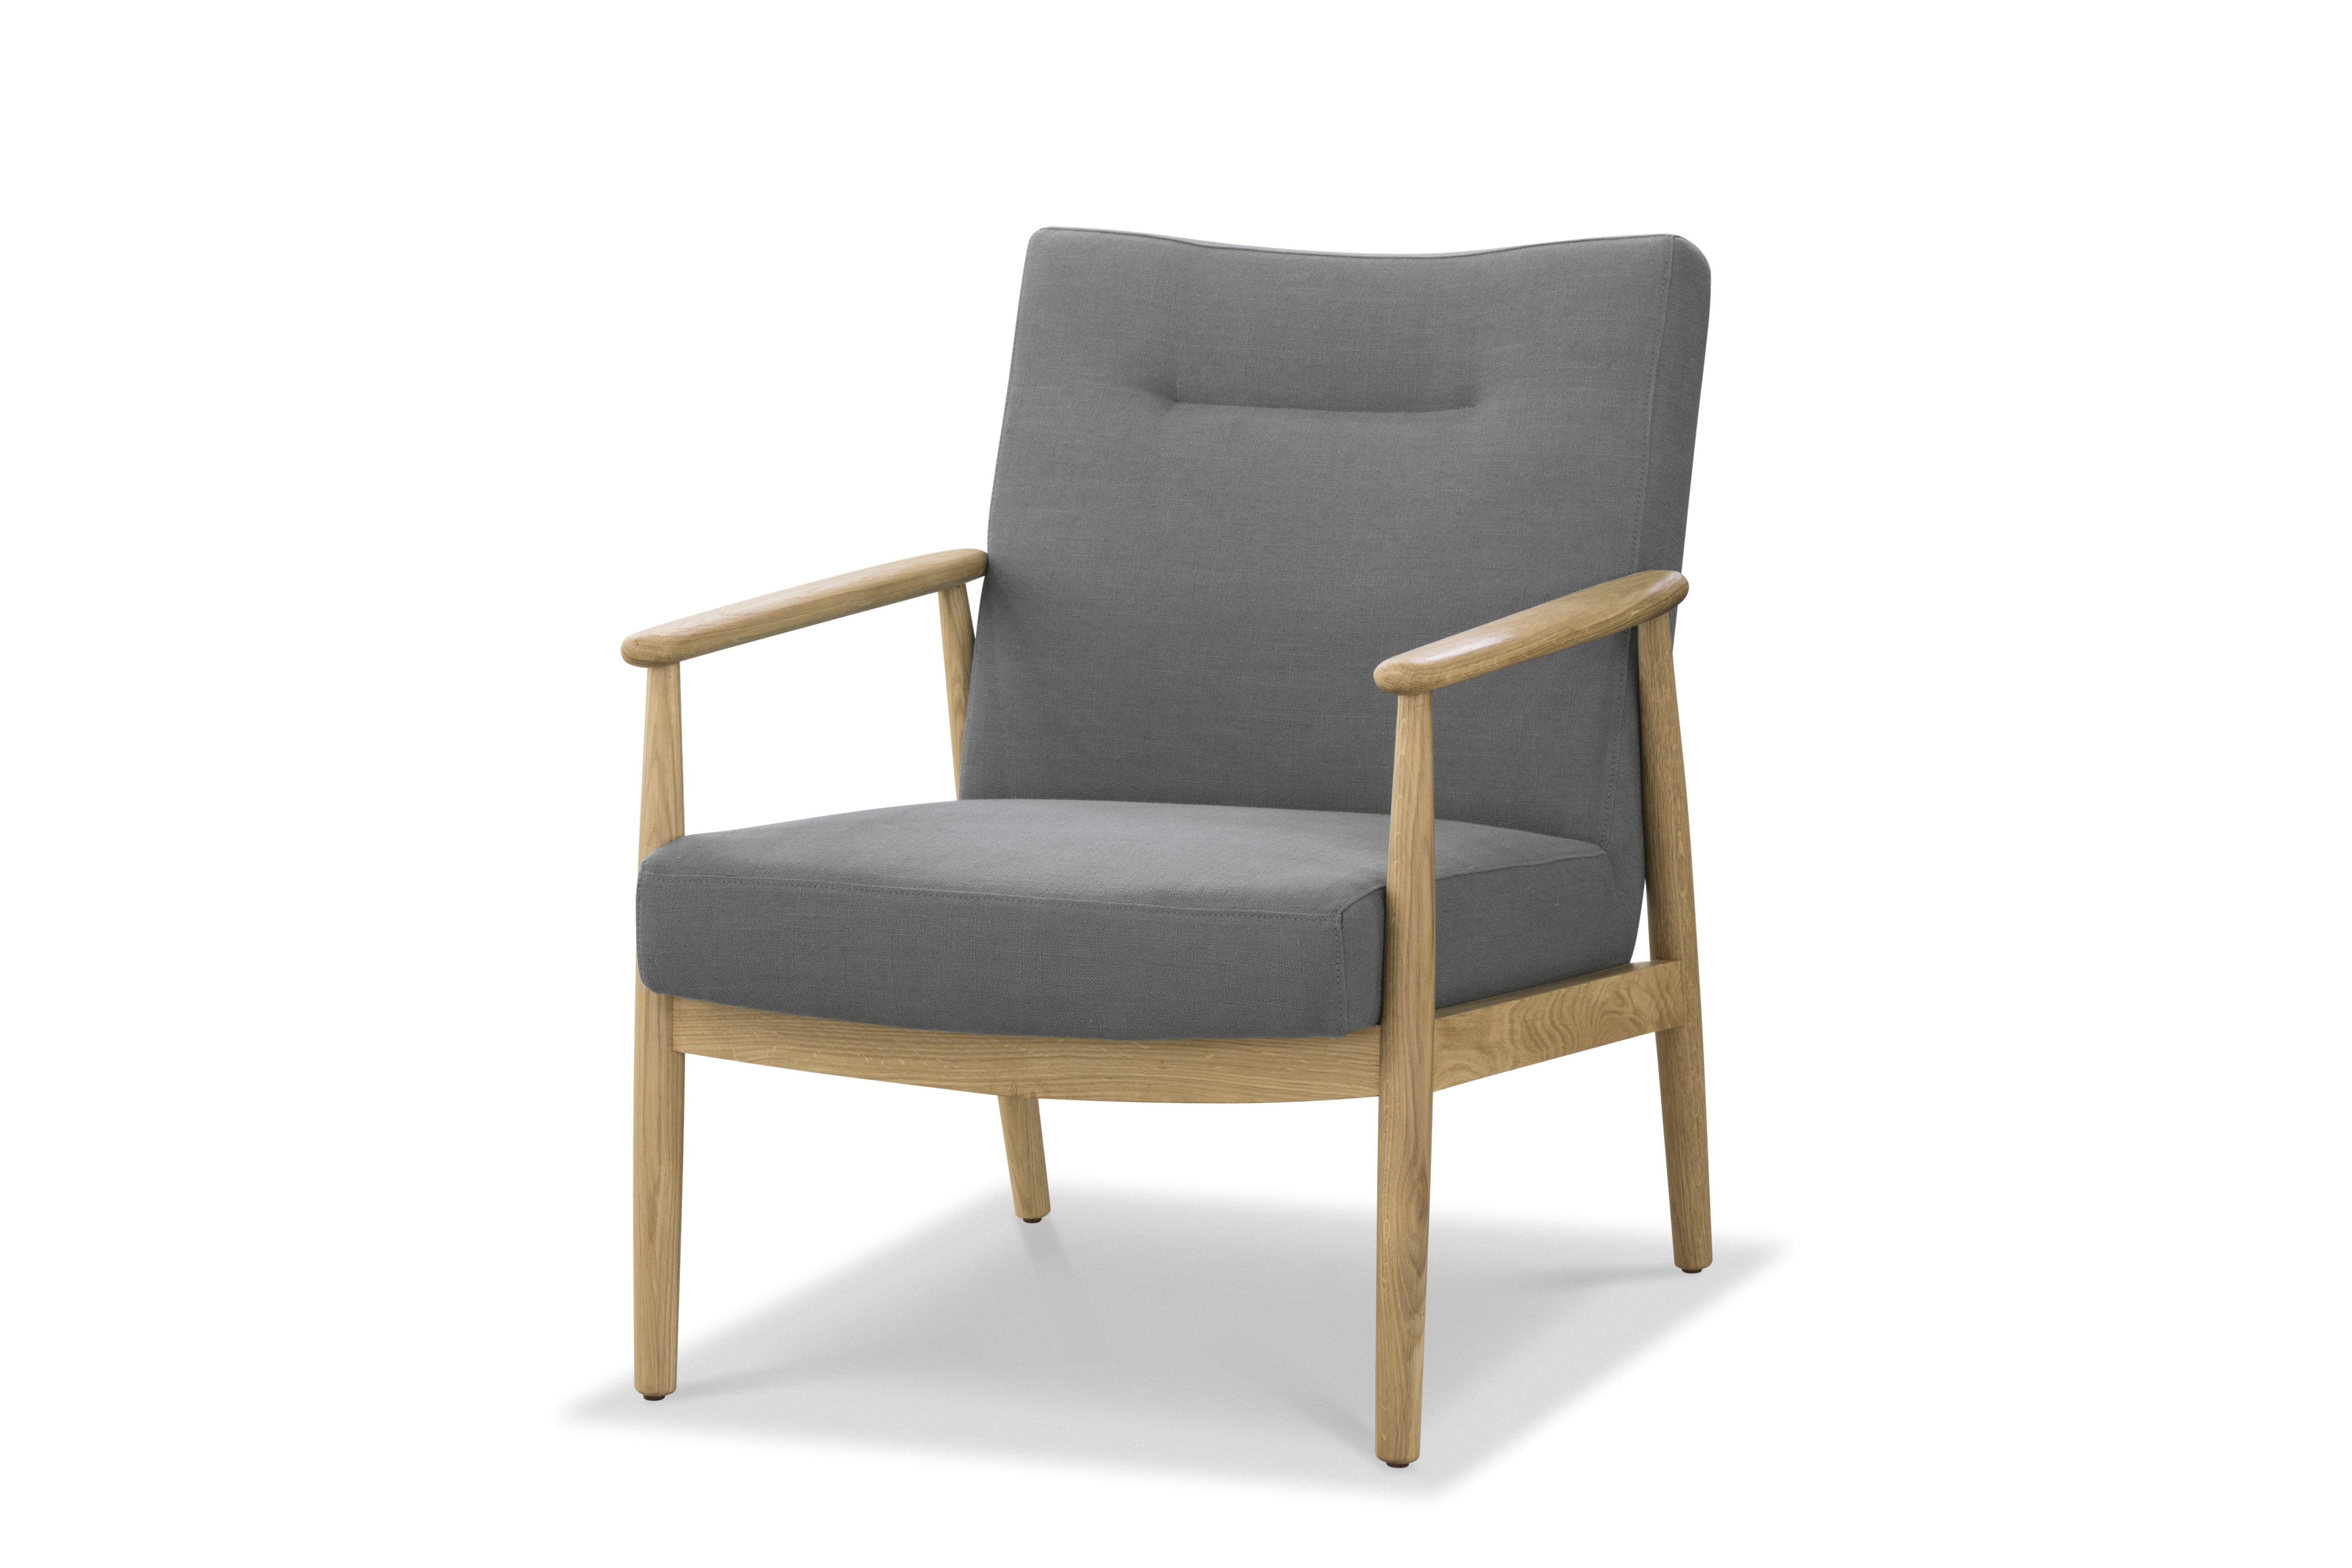 Mobilier Achat Catanzaro Diego Vente Fauteuil Scandinave n08PkOXw